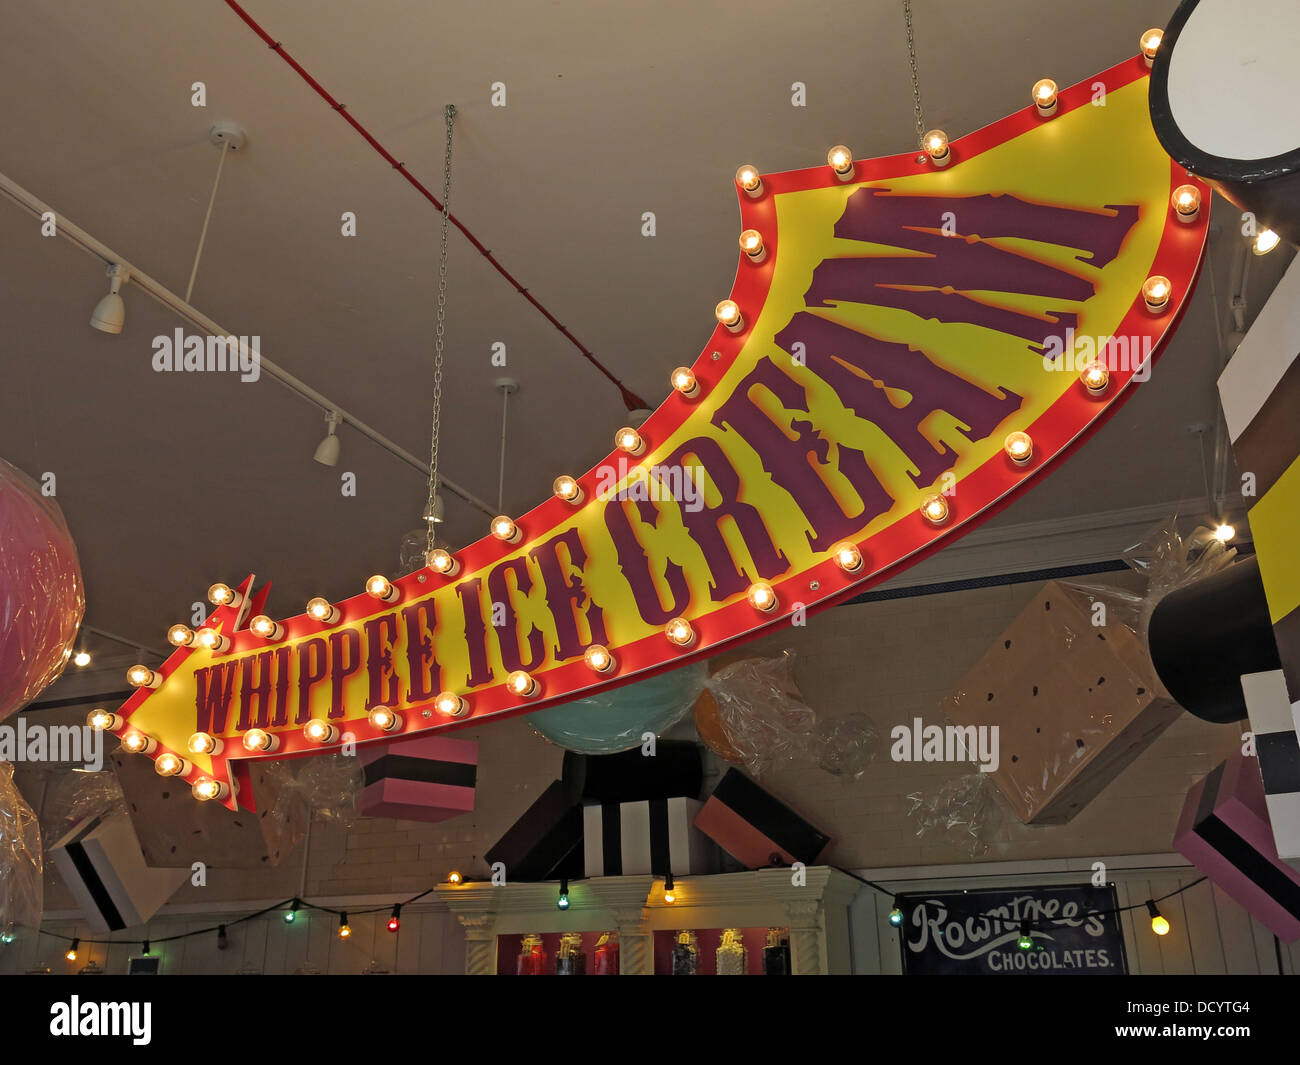 Mr Whippee Ice Cream sign, inside a cafe - Stock Image